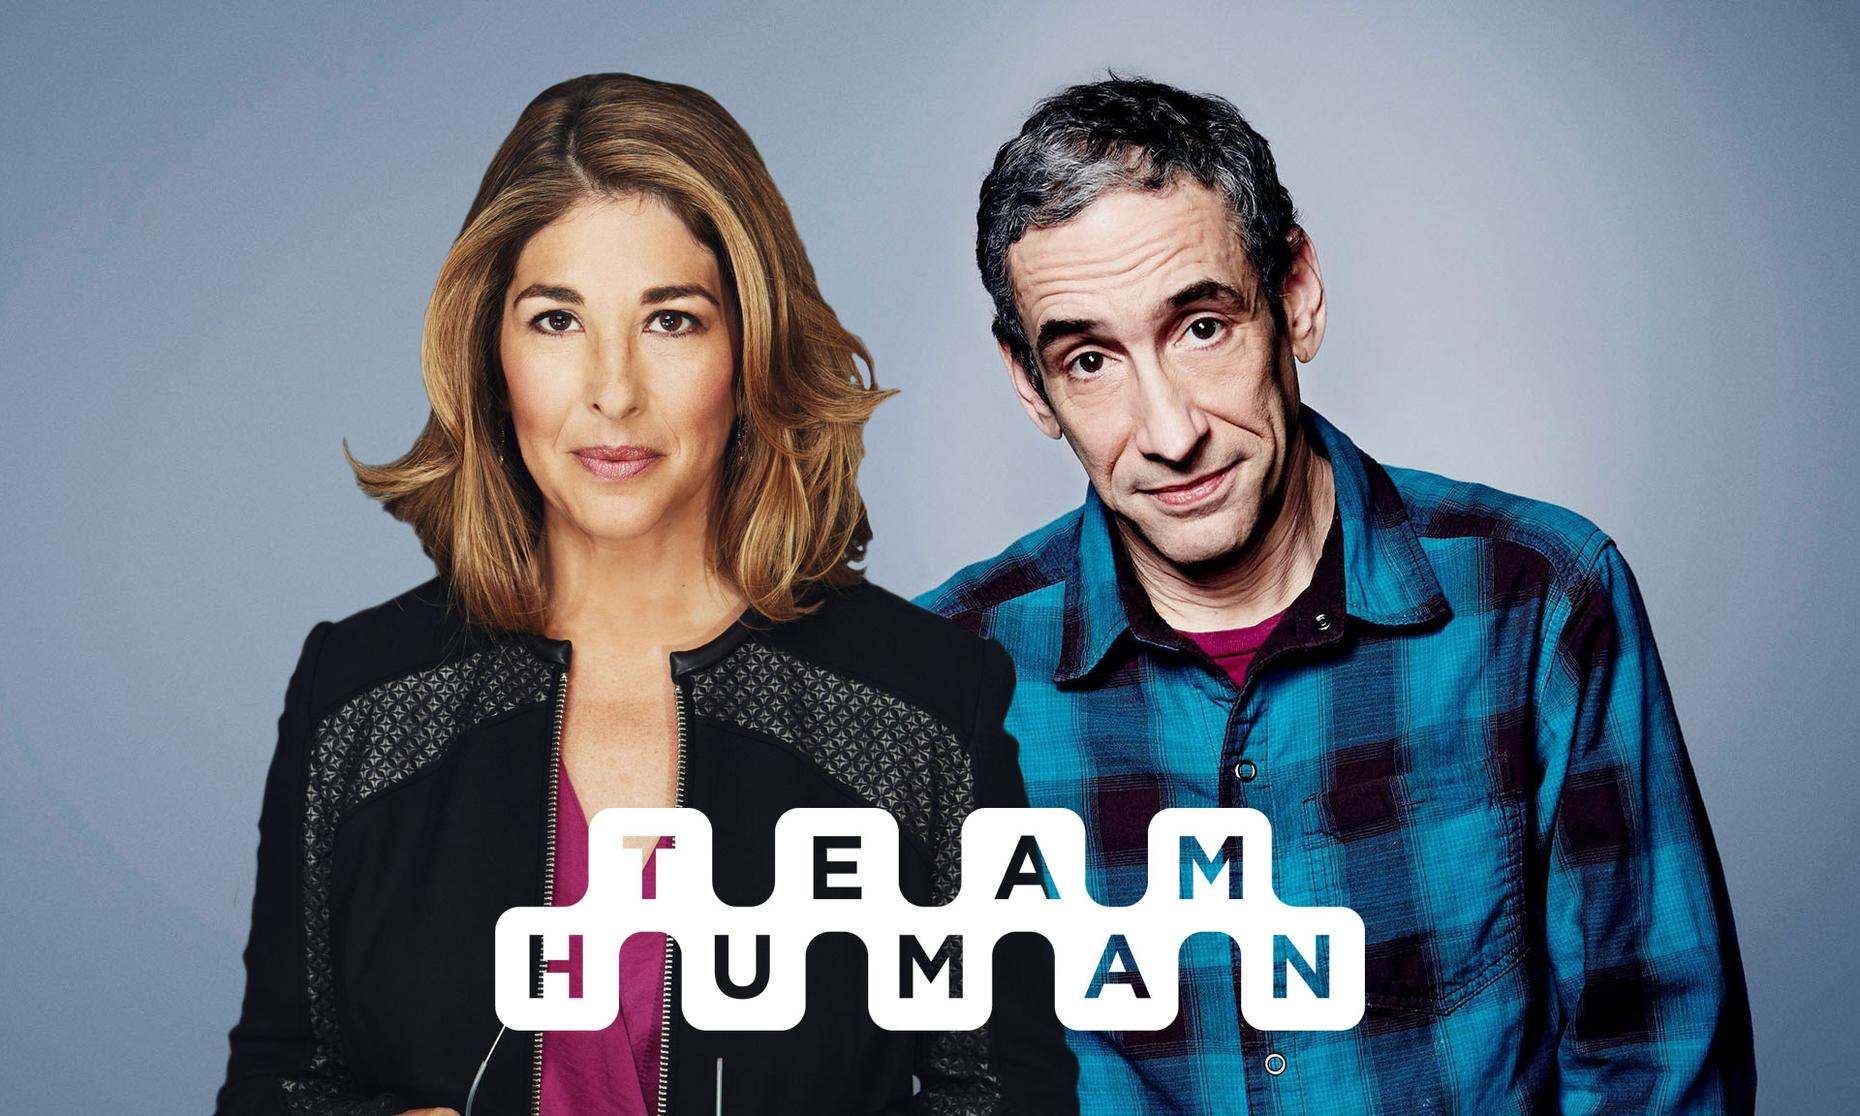 Team Human with Naomi Klein and Douglas Rushkoff